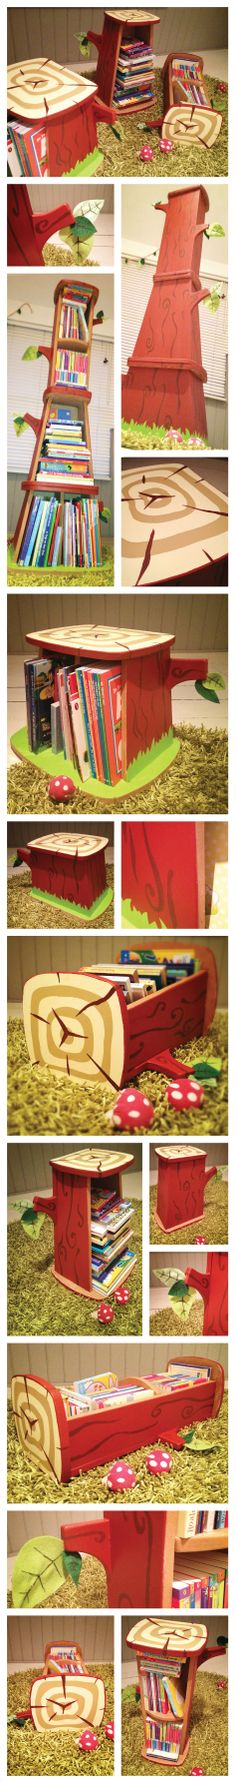 Log Books : DIY MDF book storage for our boy's woodland wonderland, with integrated reading stool and page holder branches ideal for storytime!